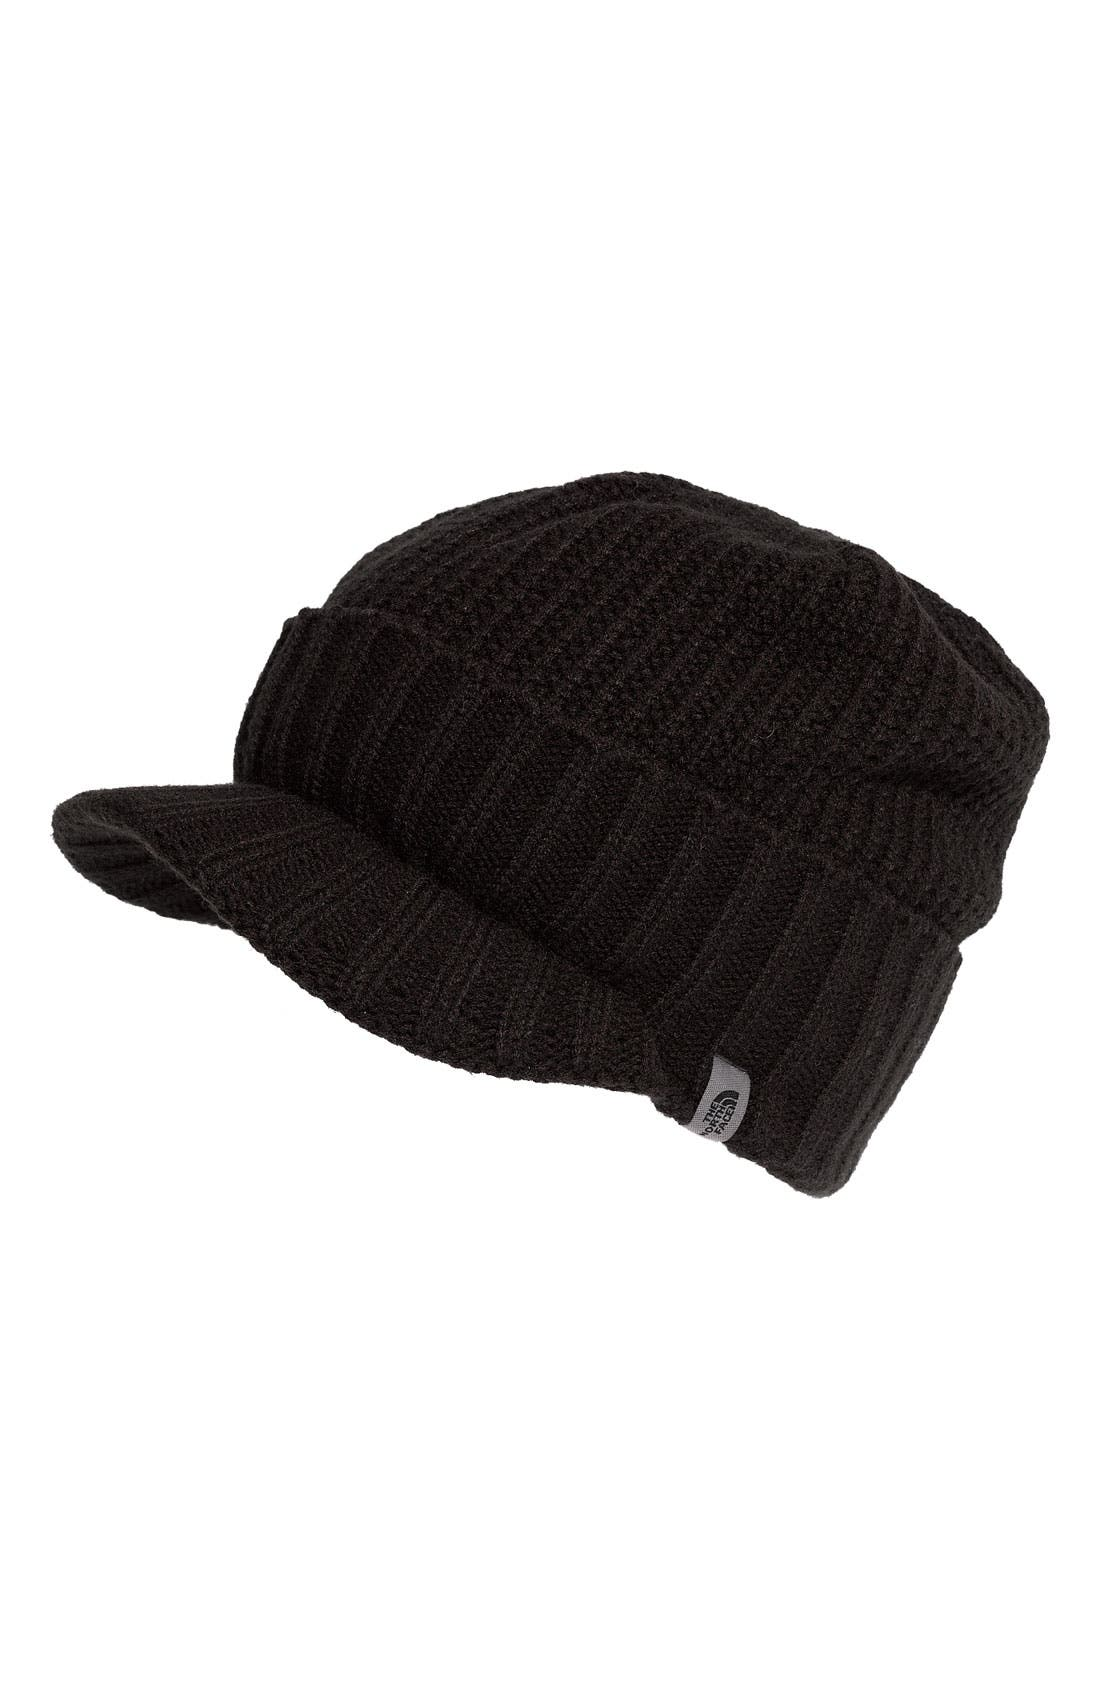 Alternate Image 1 Selected - The North Face 'GTO' Rib Knit Visor Beanie (Men)